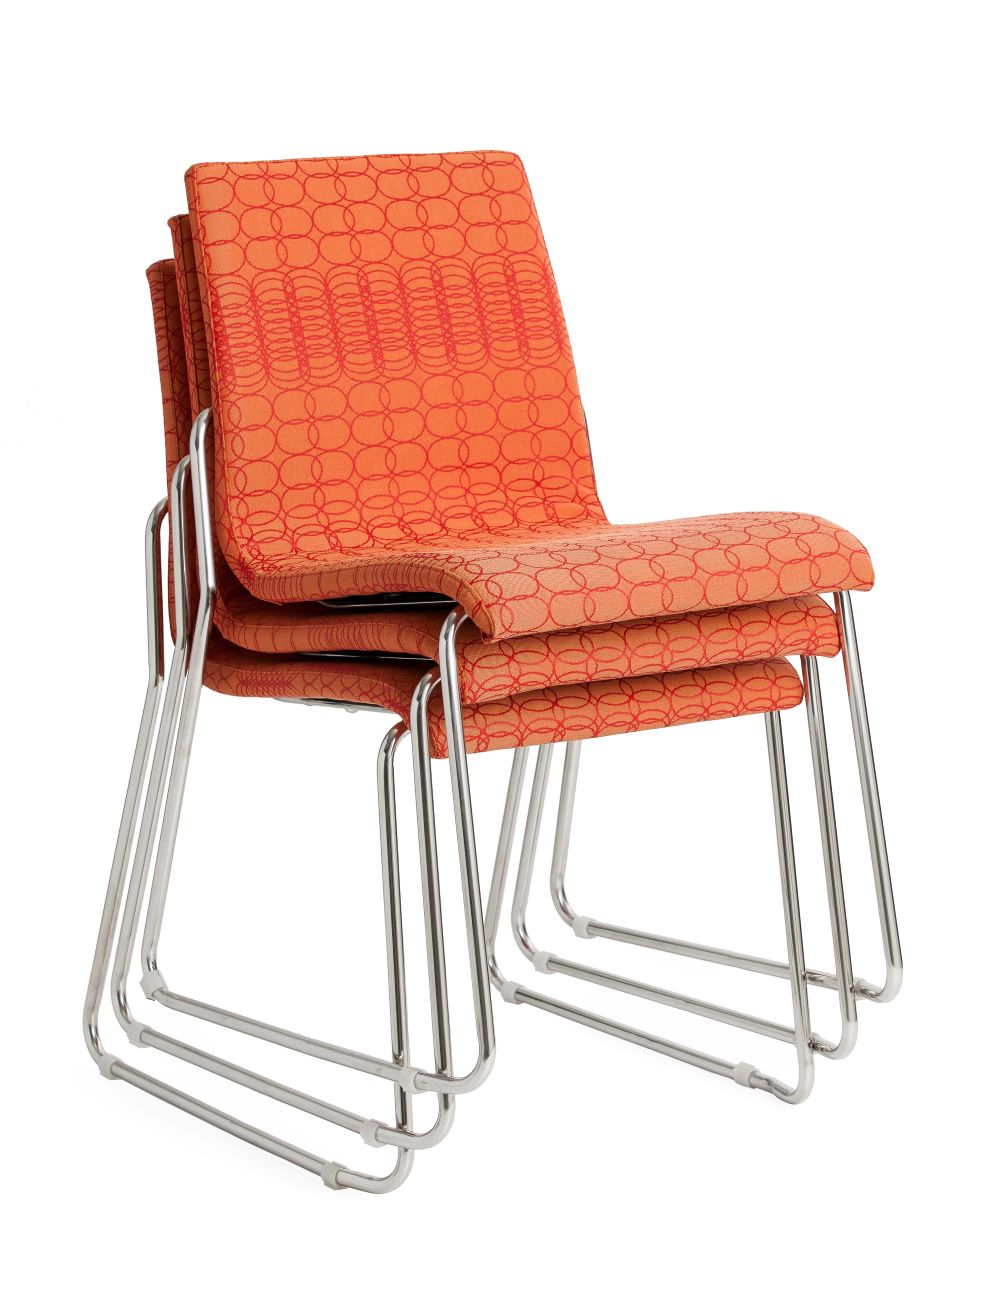 Design Sled Base in orange with silver frame stacked 3 high